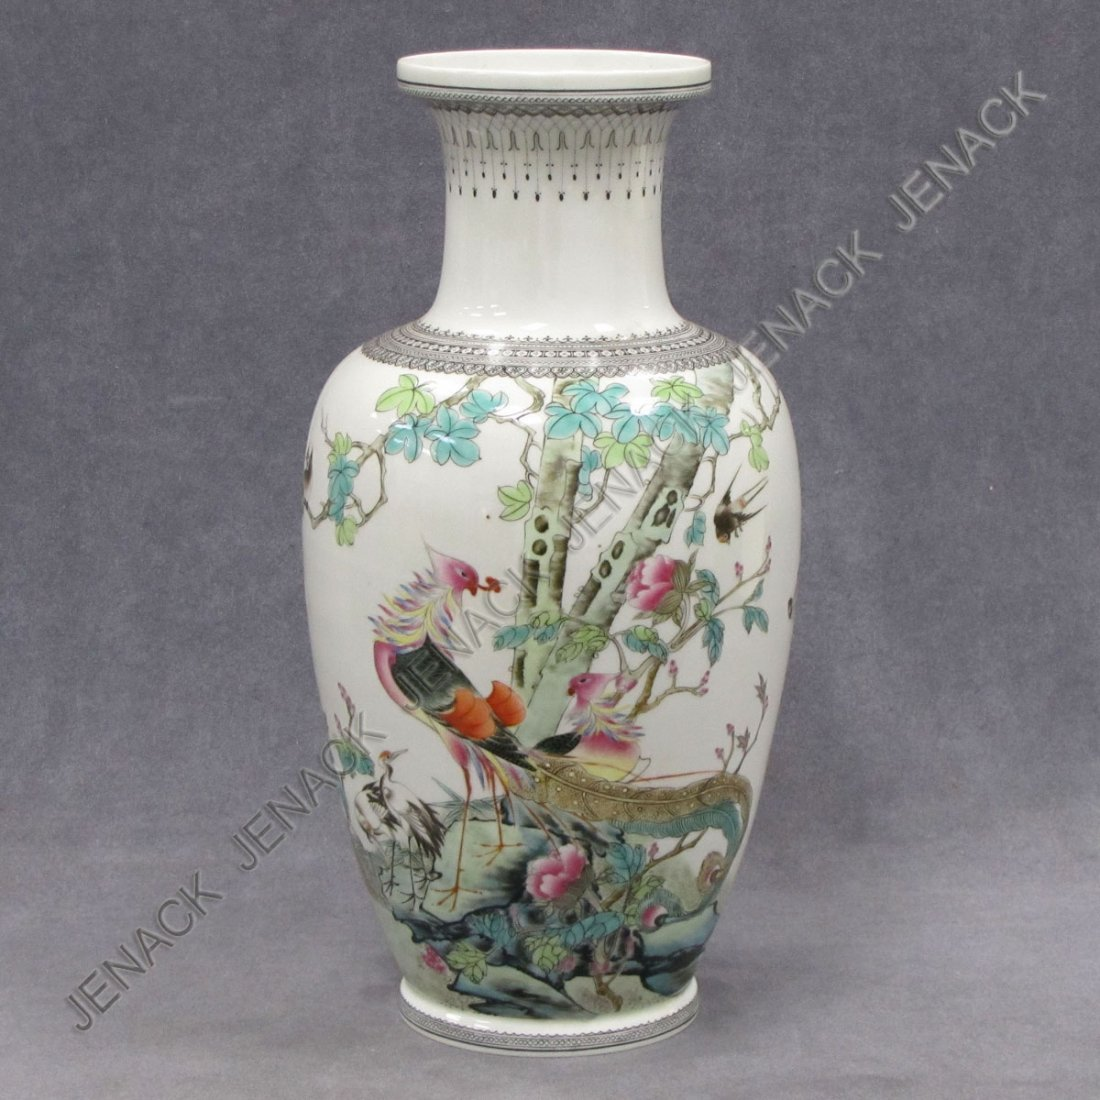 288: CHINESE FAMILLE ROSE DECORATED PORCELAIN VASE